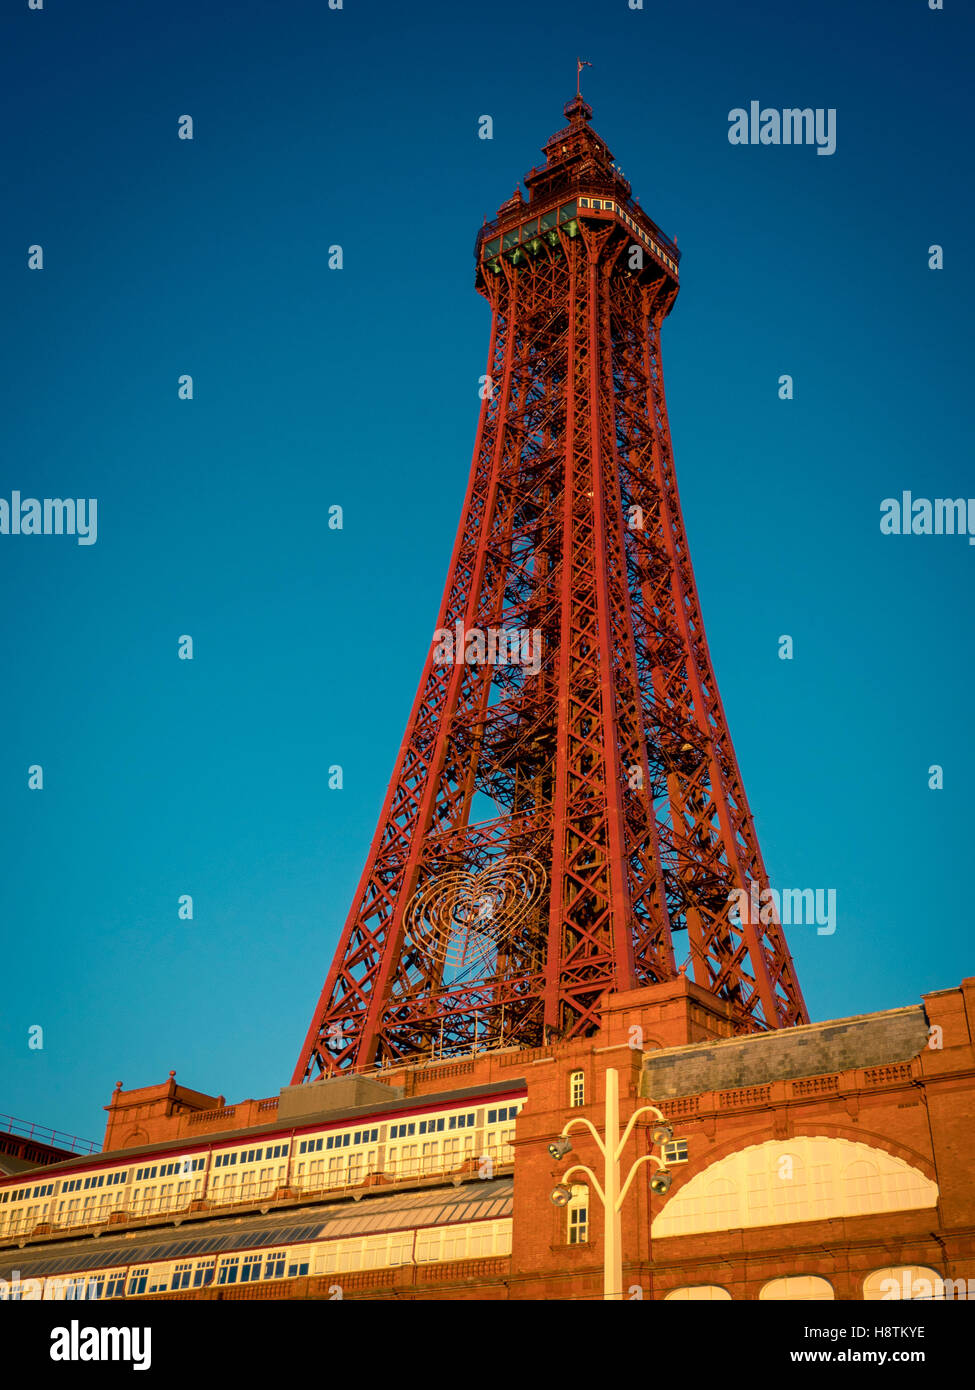 Blackpool Tower, Lancashire, UK. - Stock Image